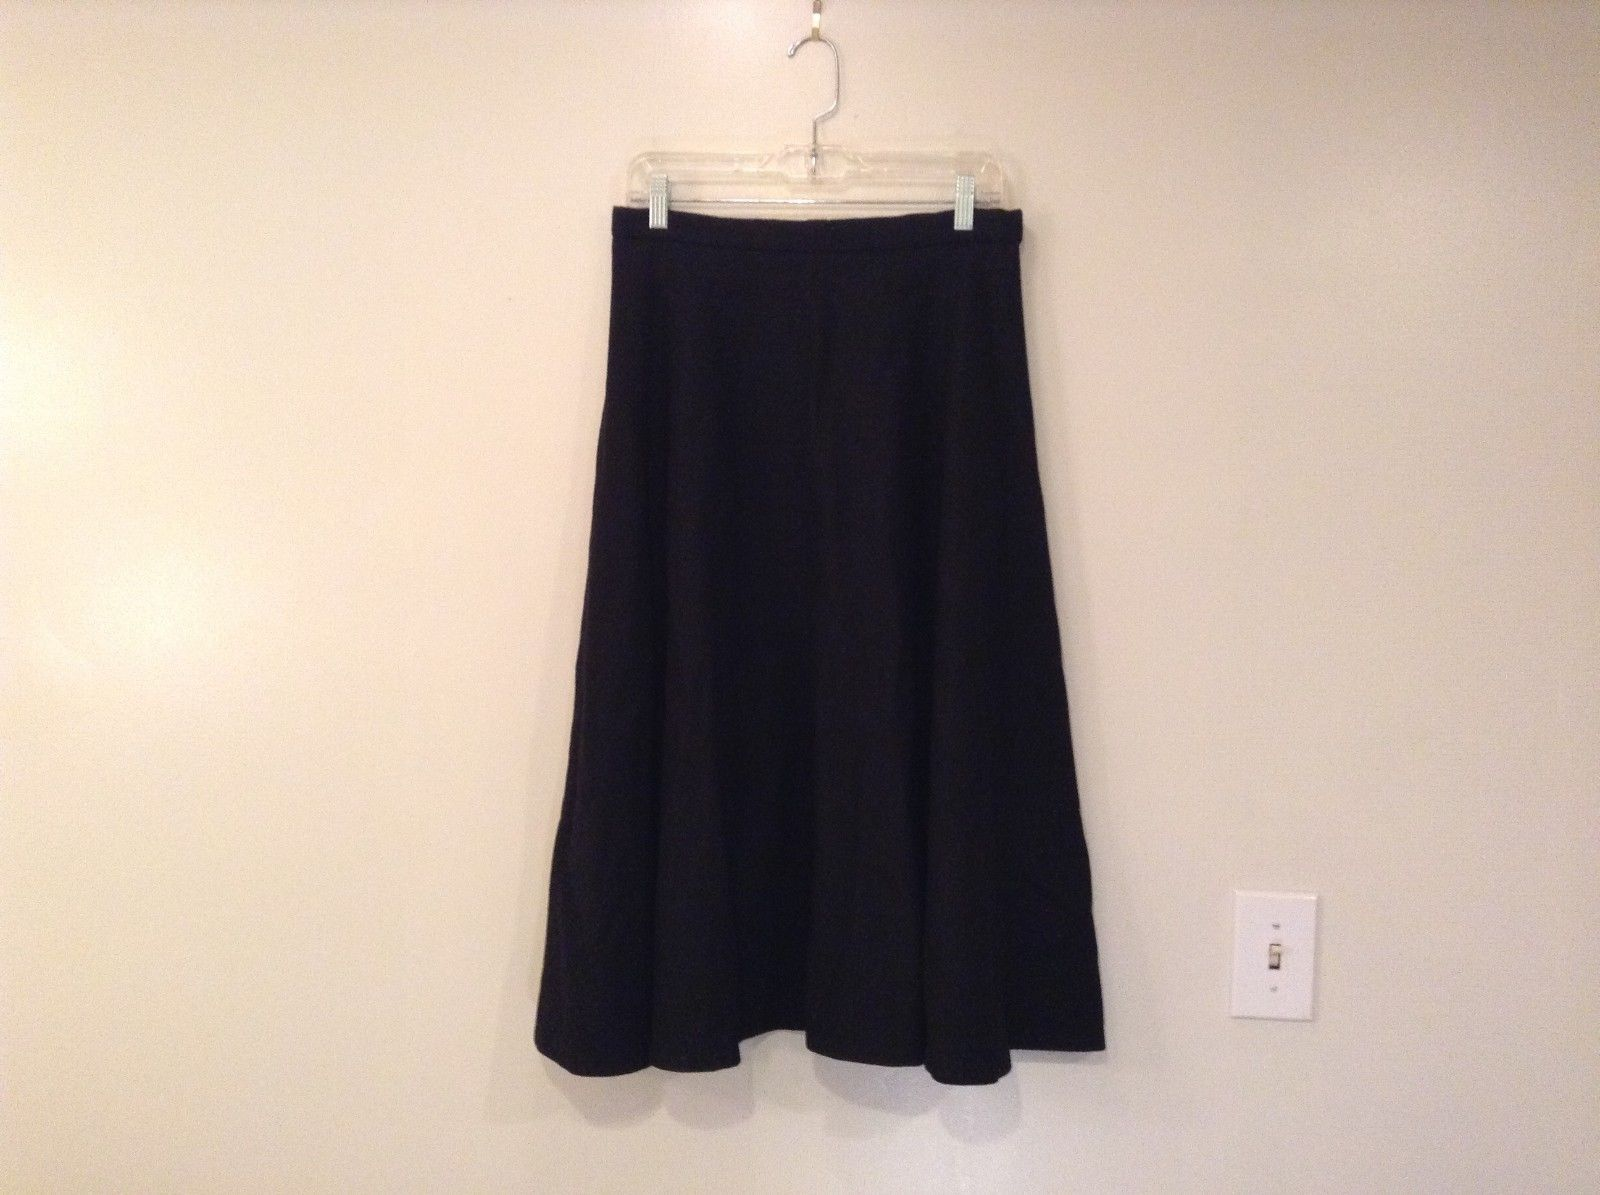 Aunt Abigail's Attic size M 100% Wool Skirt